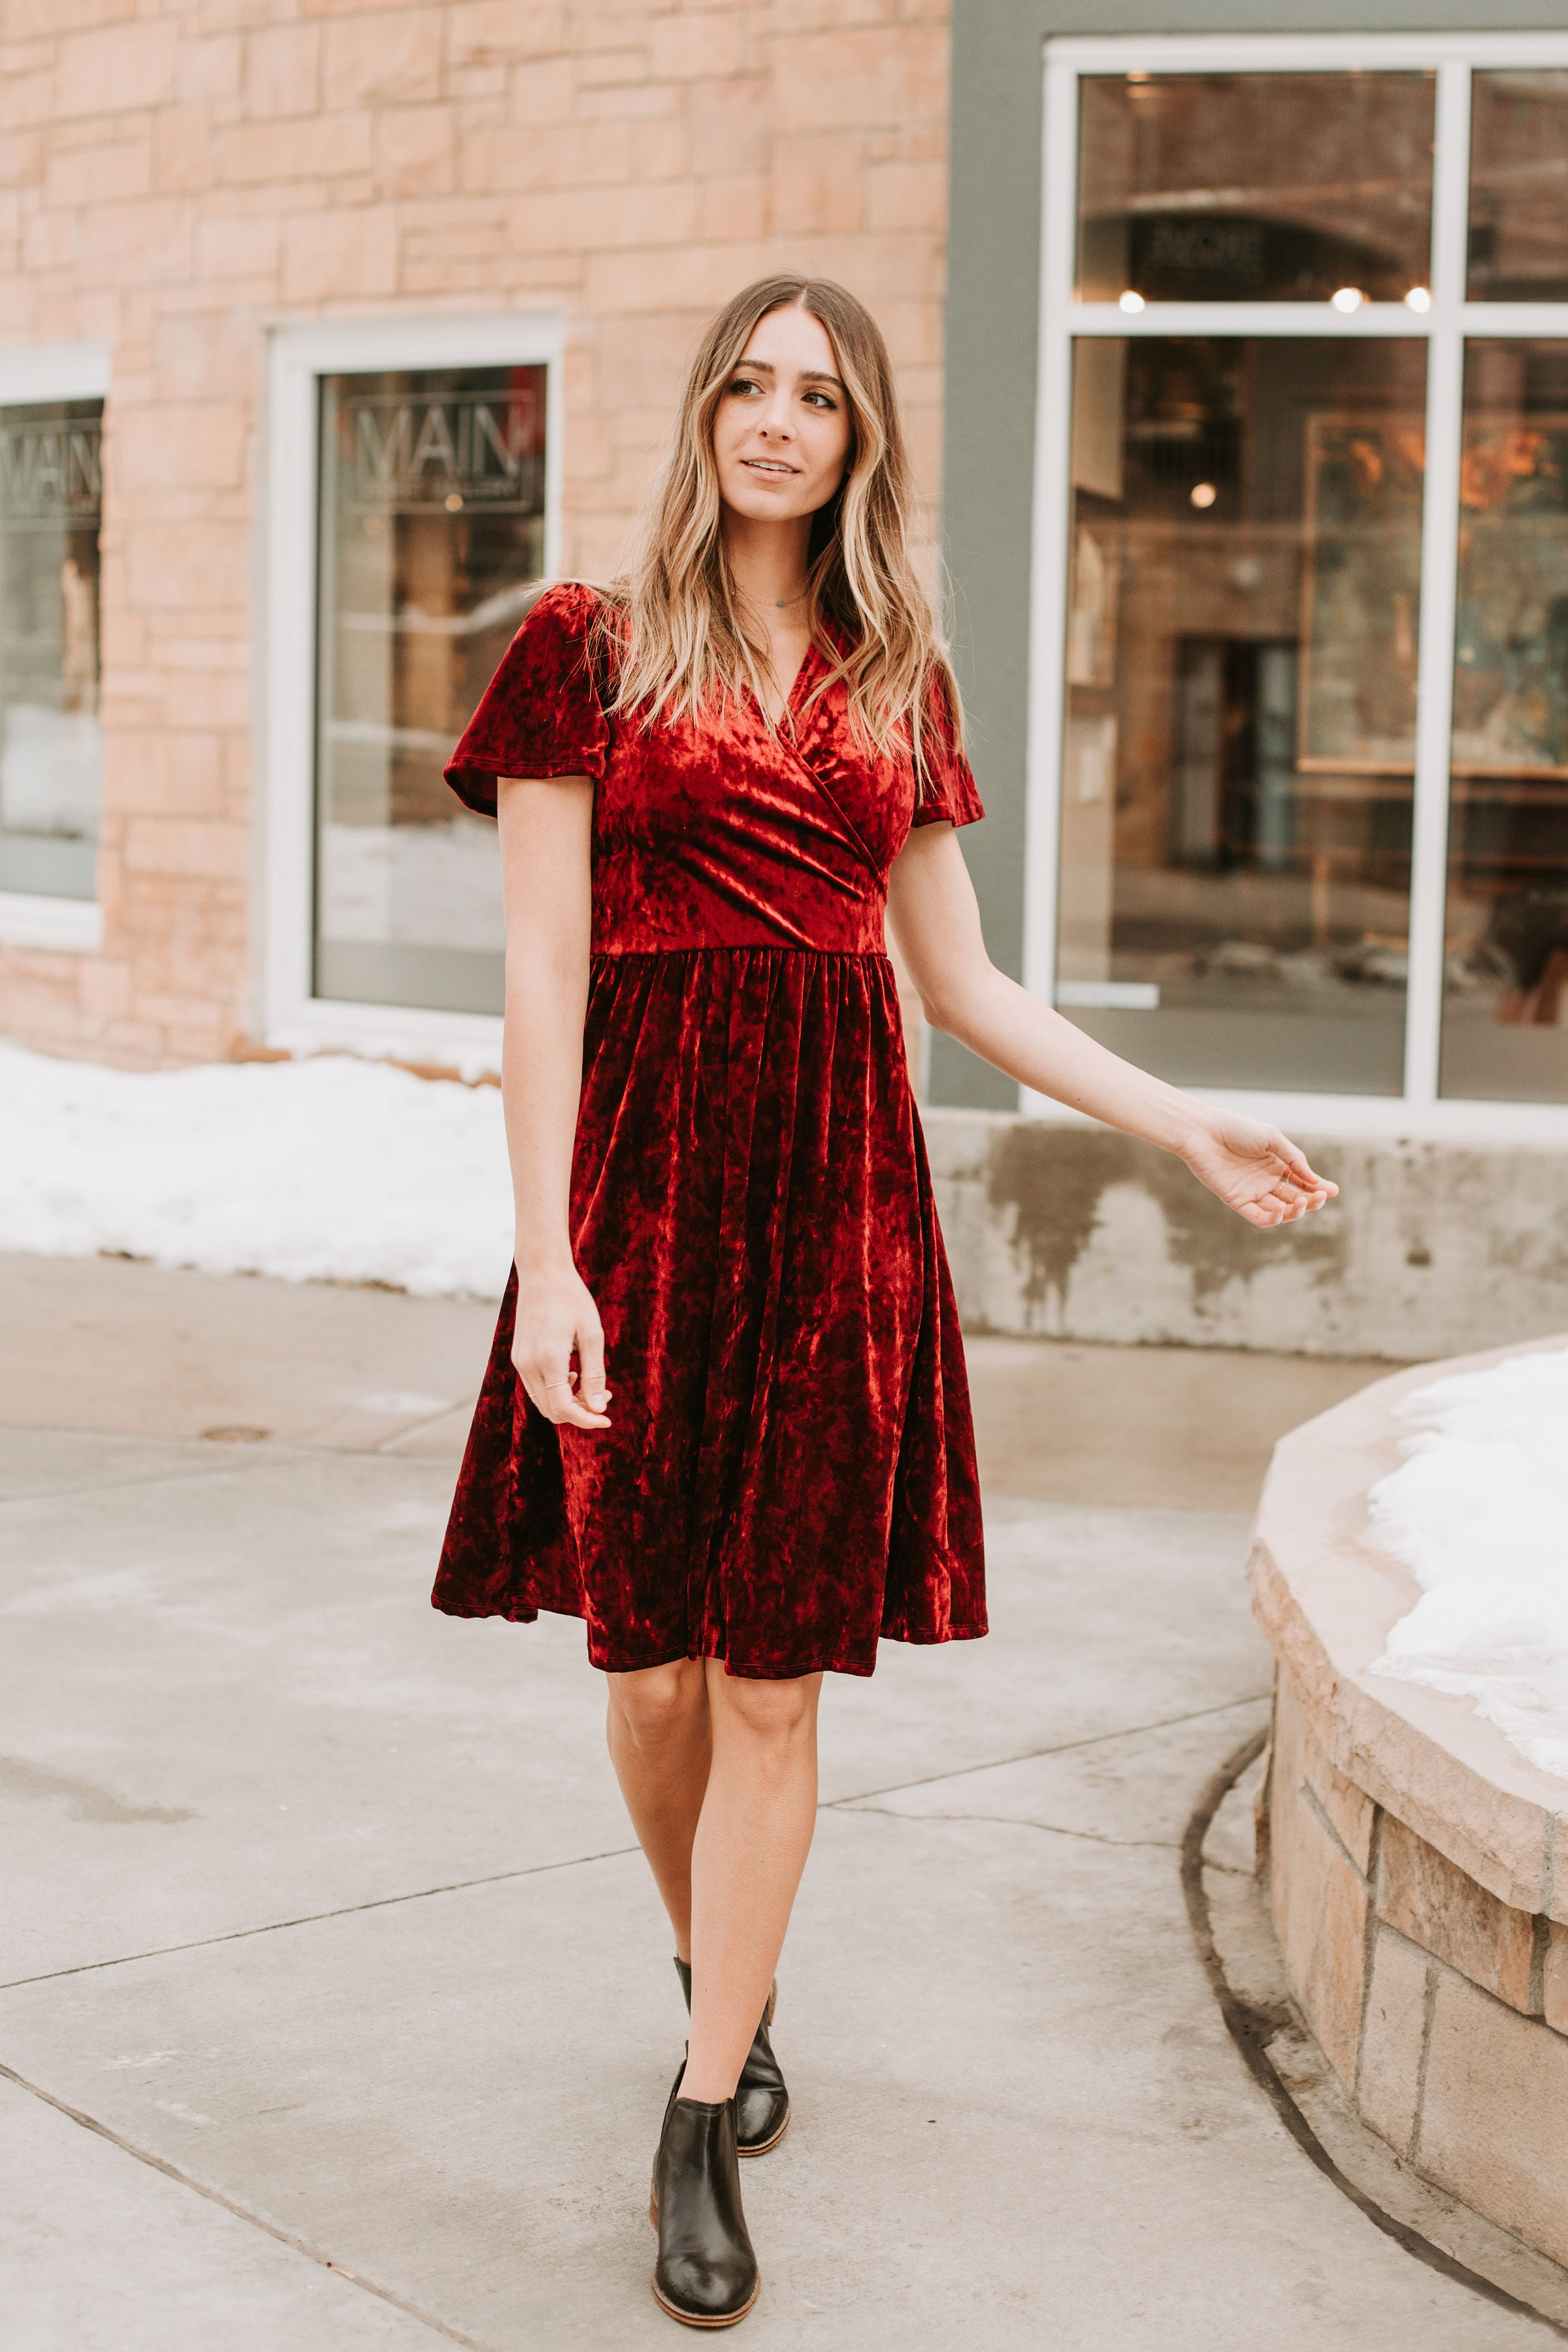 The Vera Velvet Dress in Burgundy